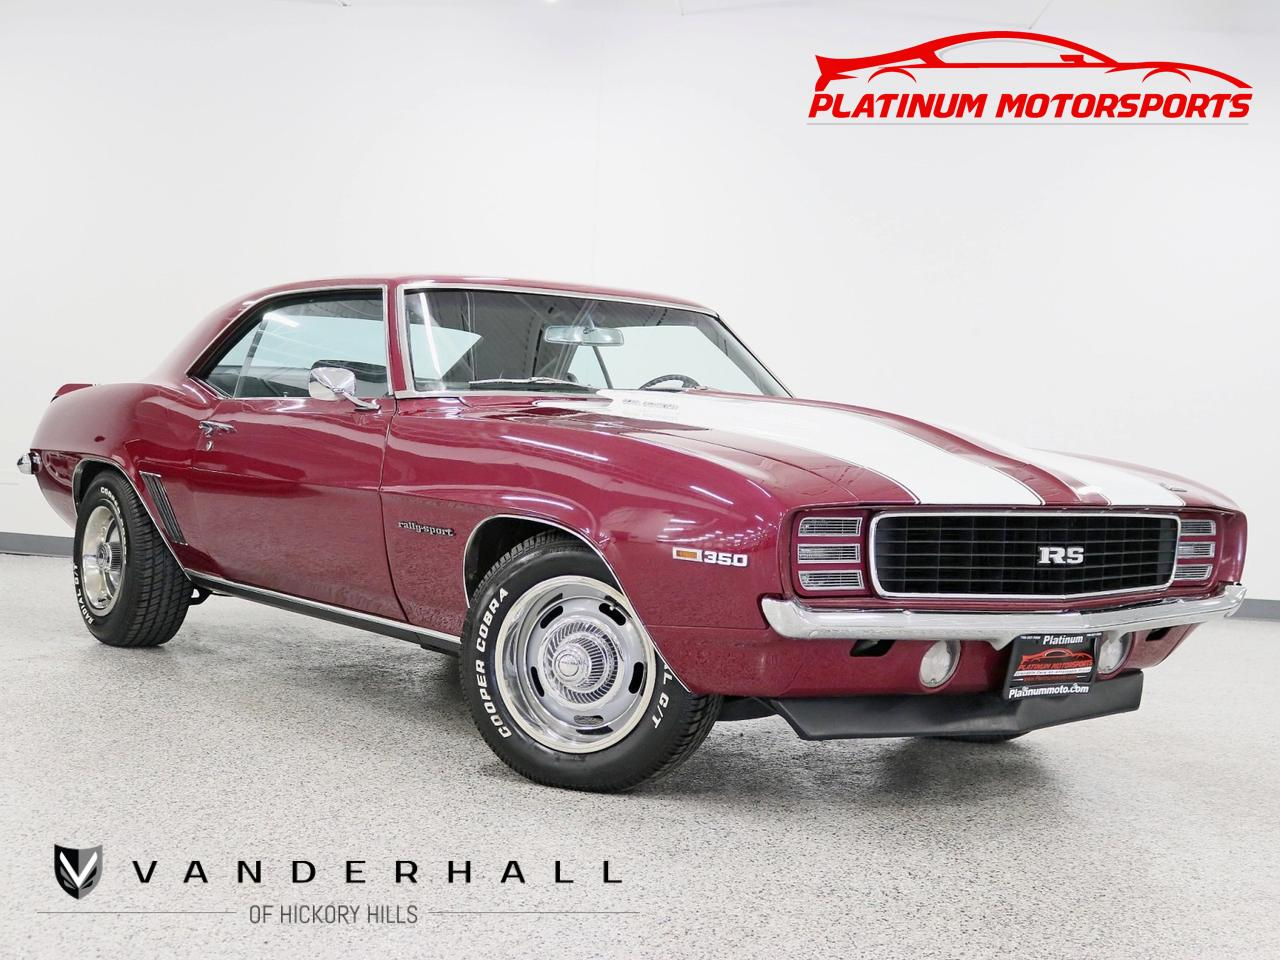 1969 Chevrolet Camaro RS 4 Speed Manual RS Hide Away Lights Rally Rims Cowl Hood Rally Stripes Hickory Hills IL